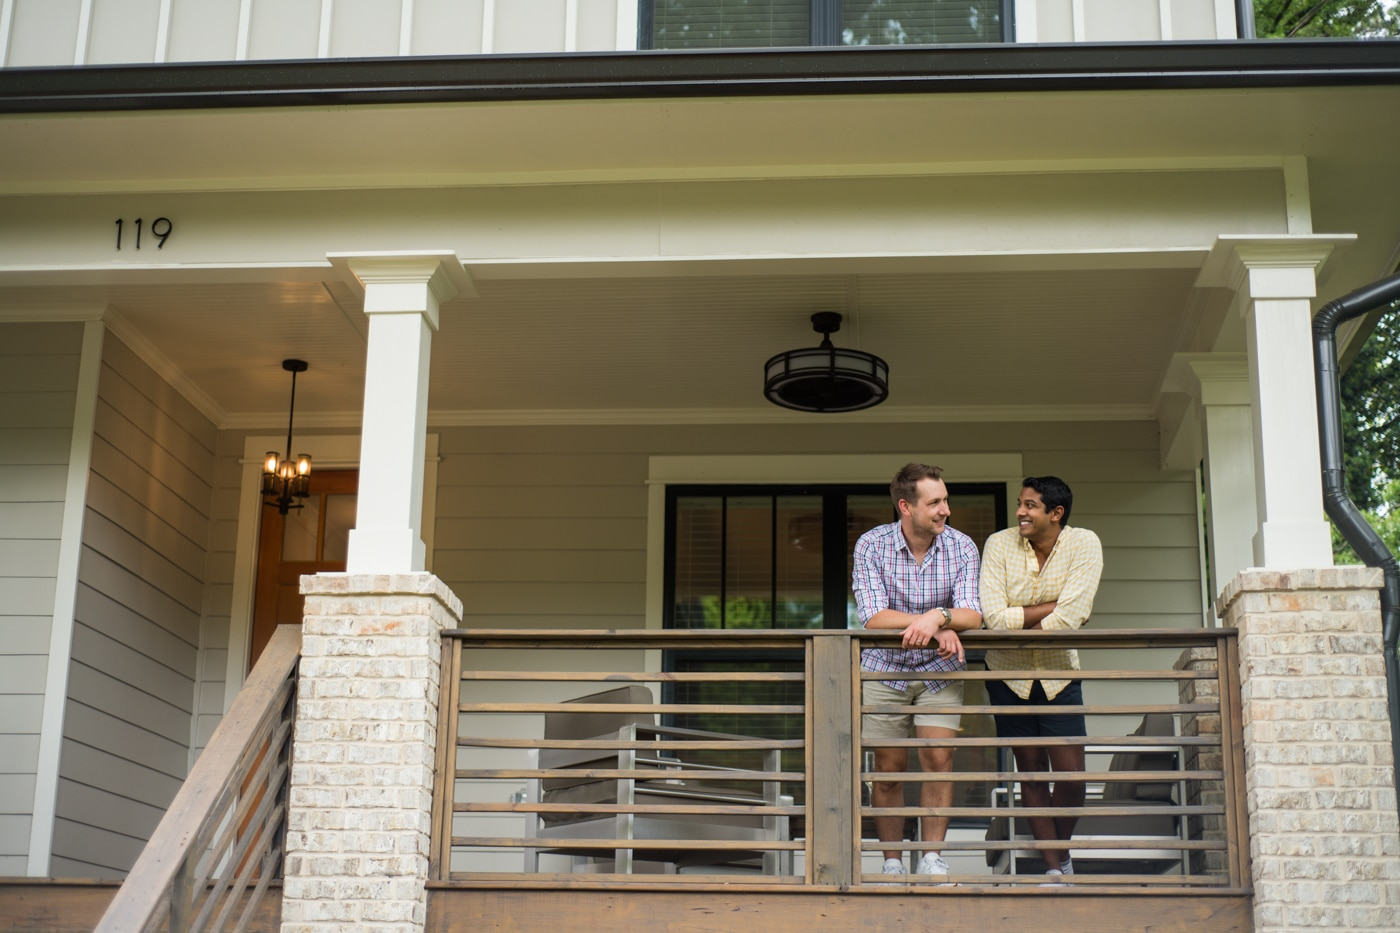 Engaged couple leaning on porch railing at their house in Atlanta GA Raven Shutley Studios